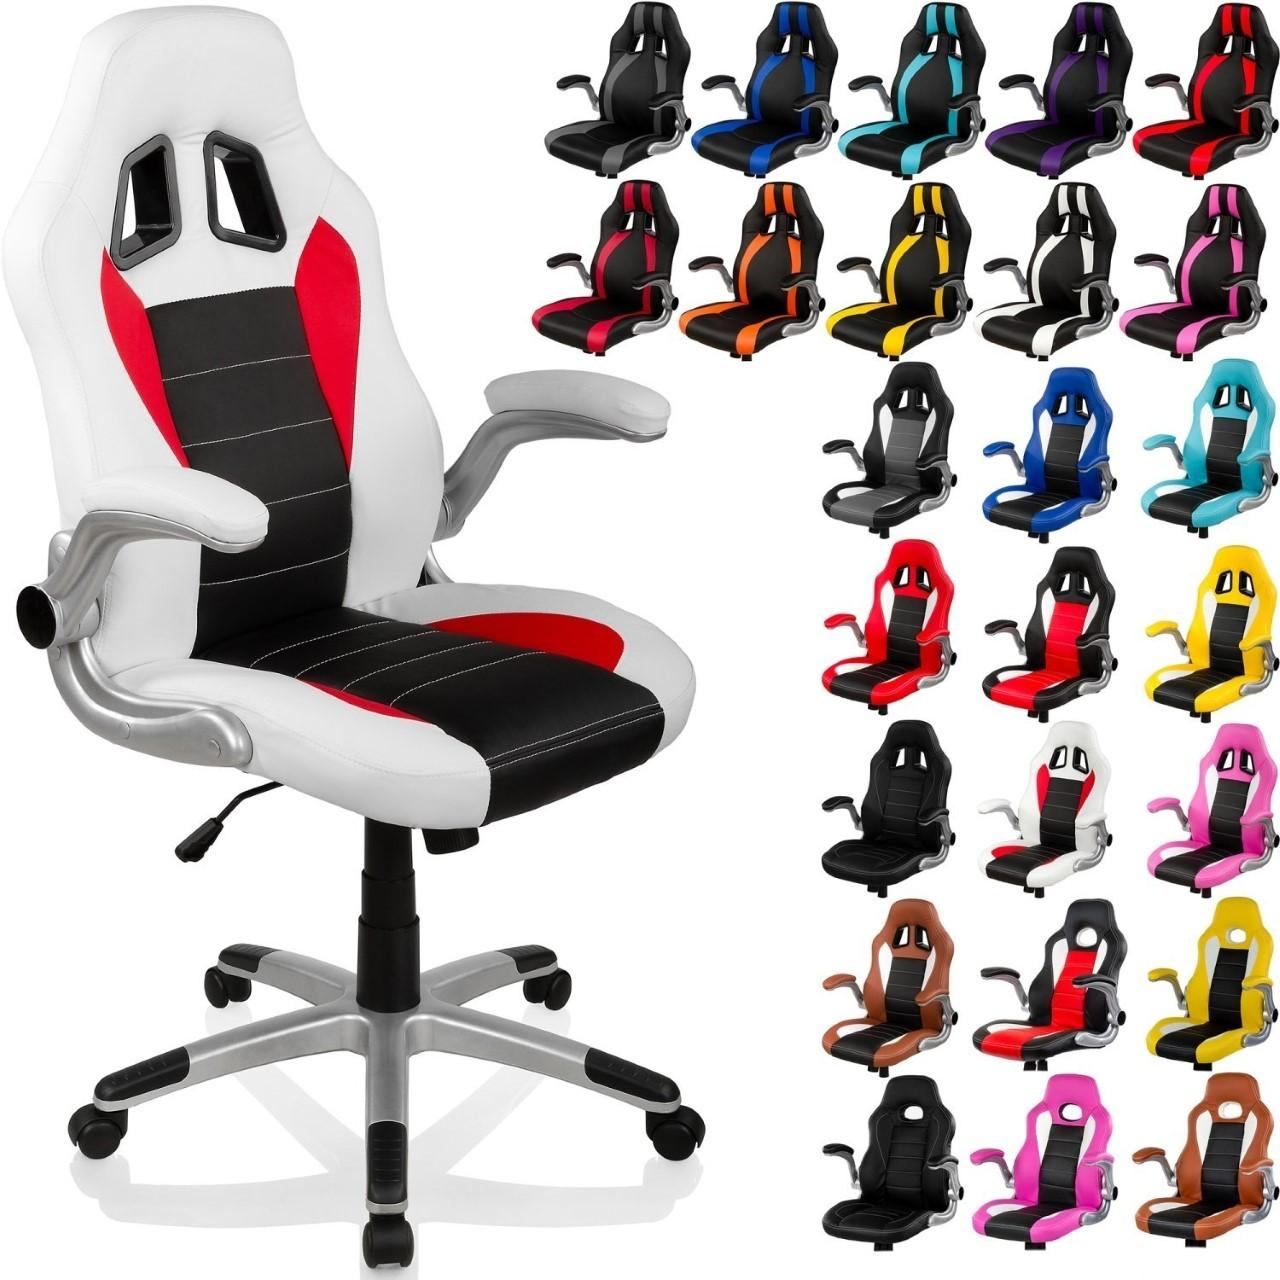 China hot selling office chair PC gaming Chair, racing seat,leather computer chair, comfortable pc chair,pc chair wholesale